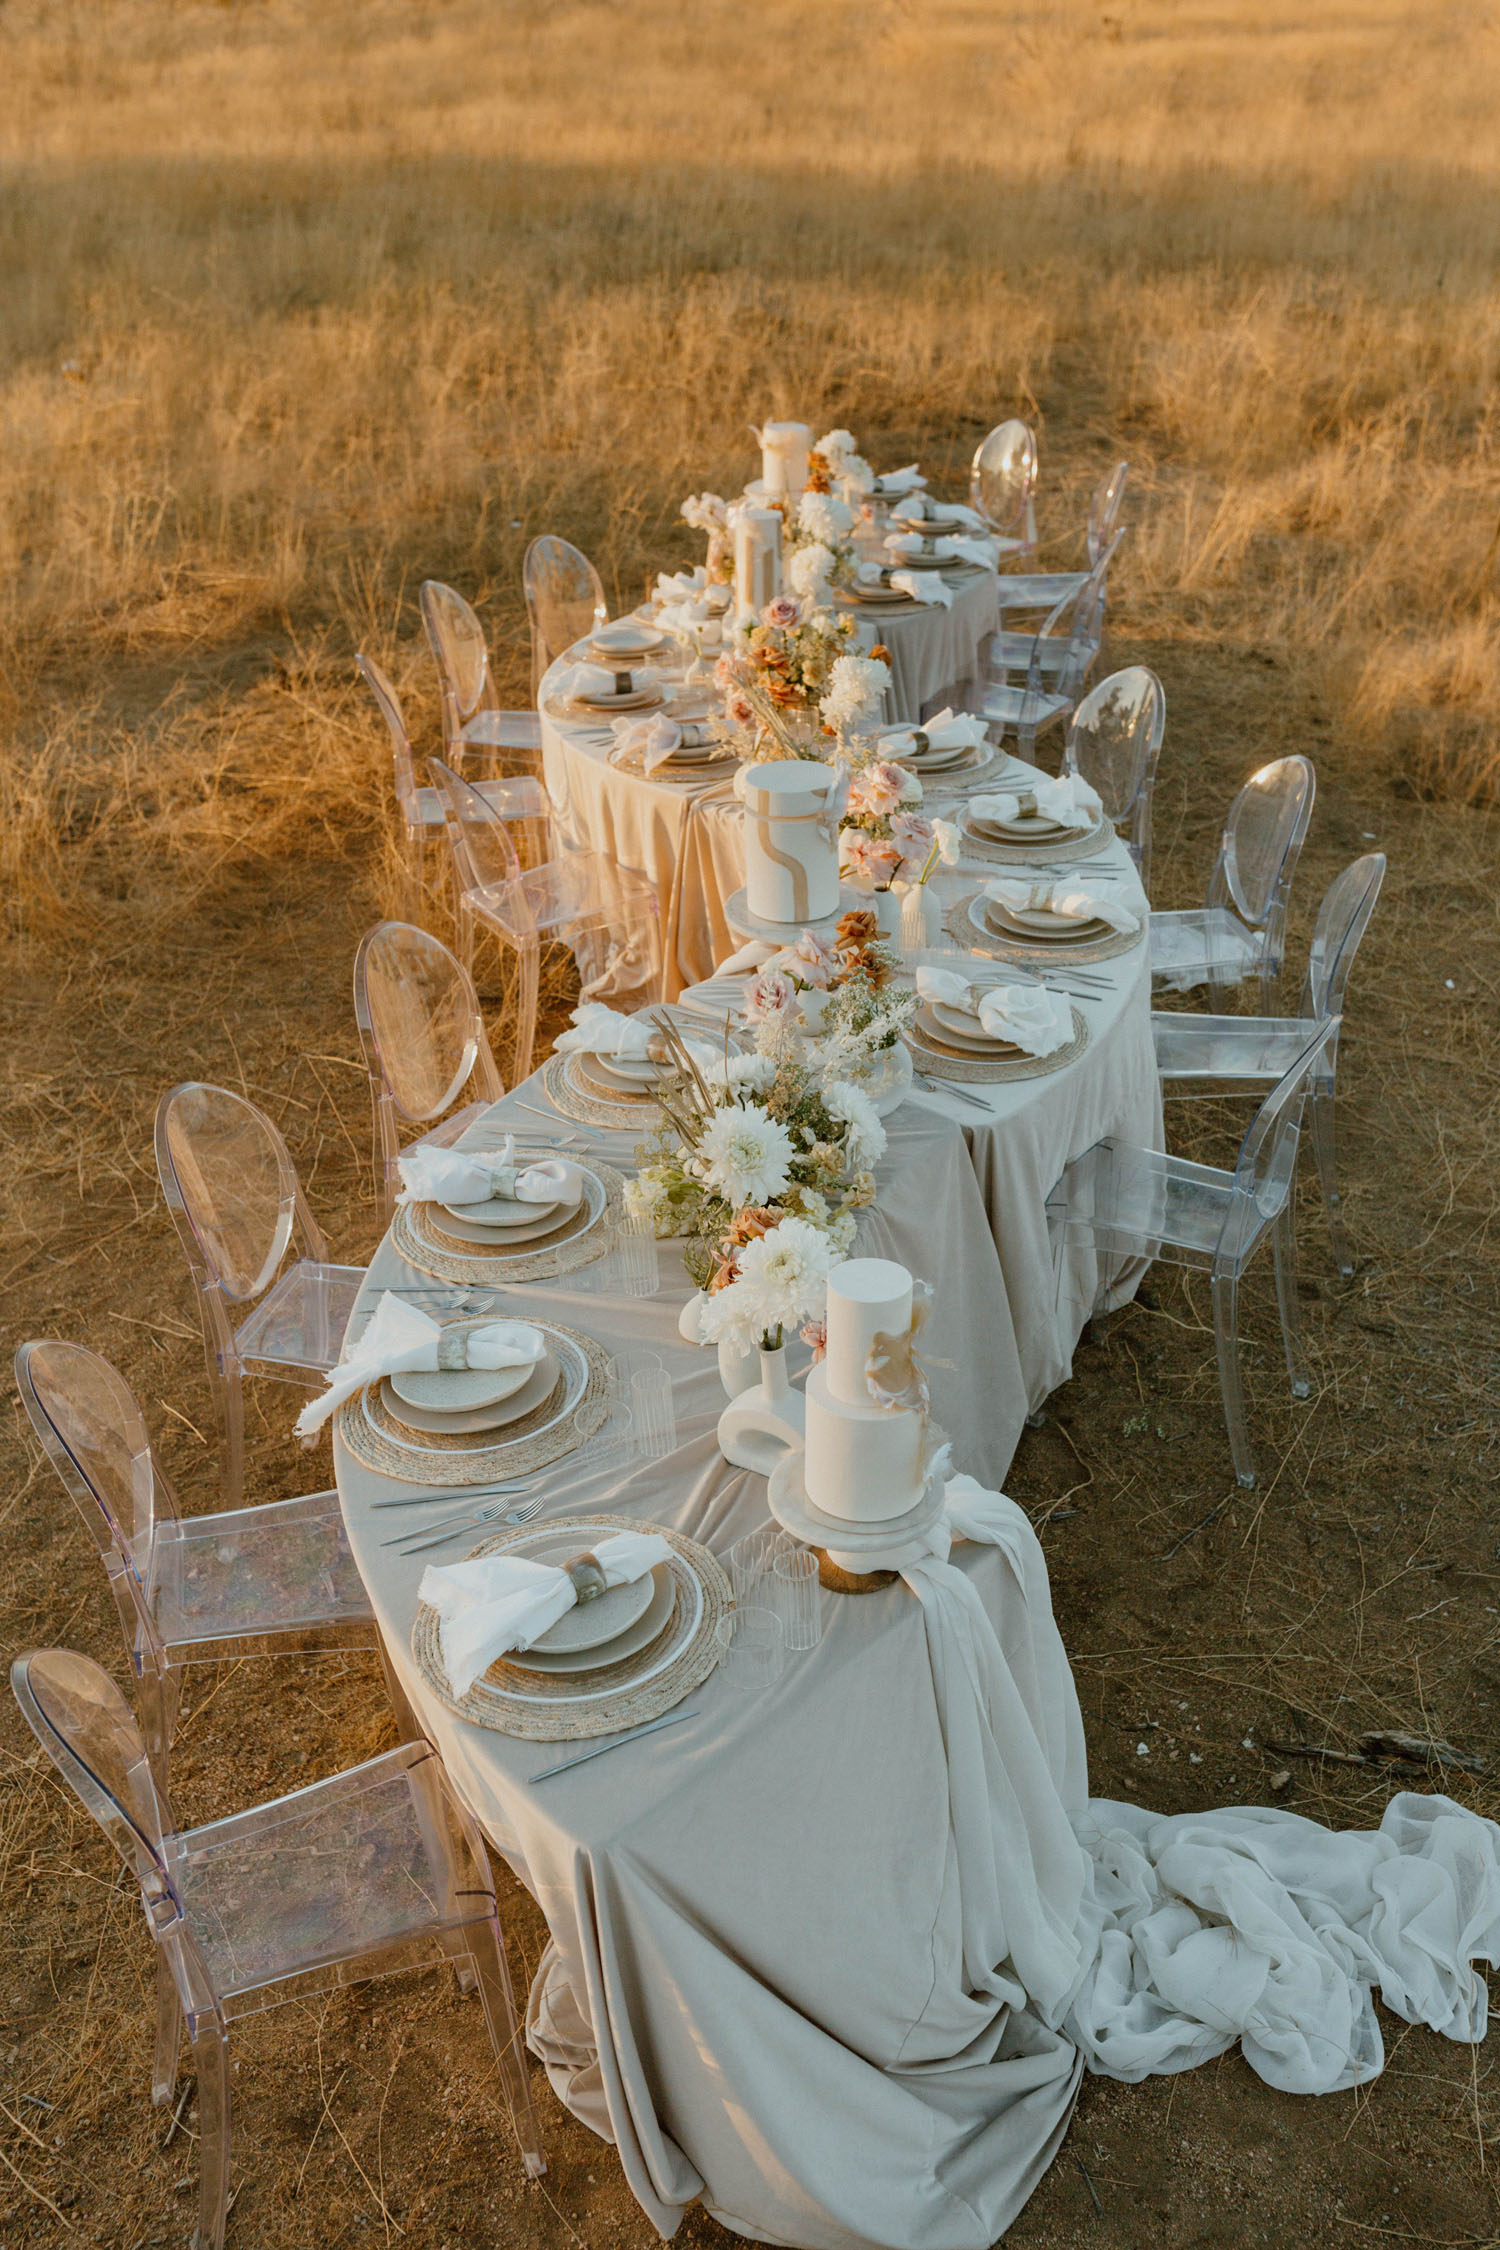 Serpentine Table in a Field for a Small Wedding